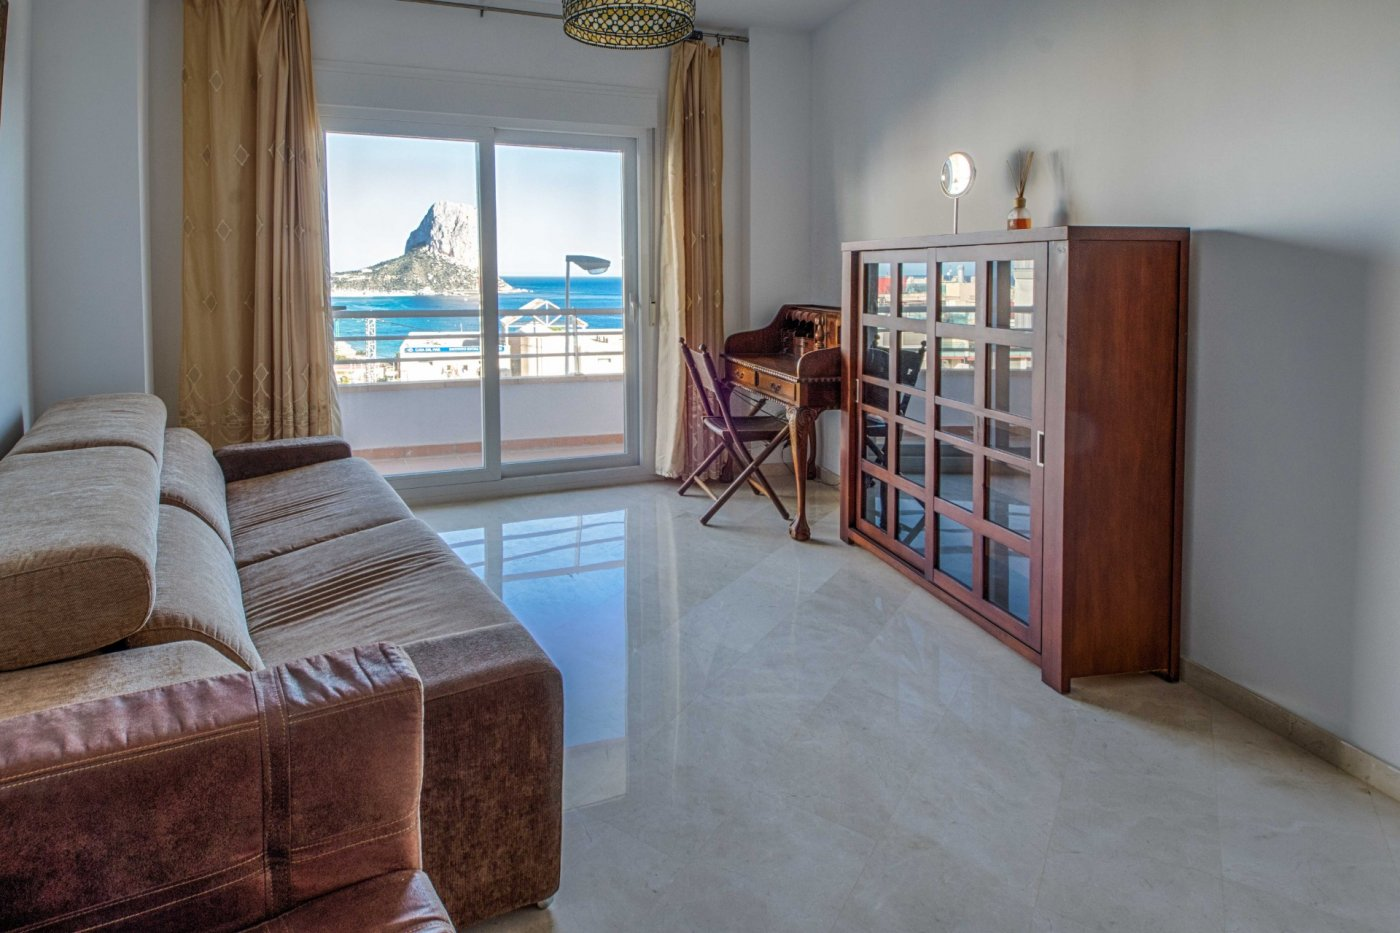 Apartment - Ready To Move And Live - Calpe - Calpe